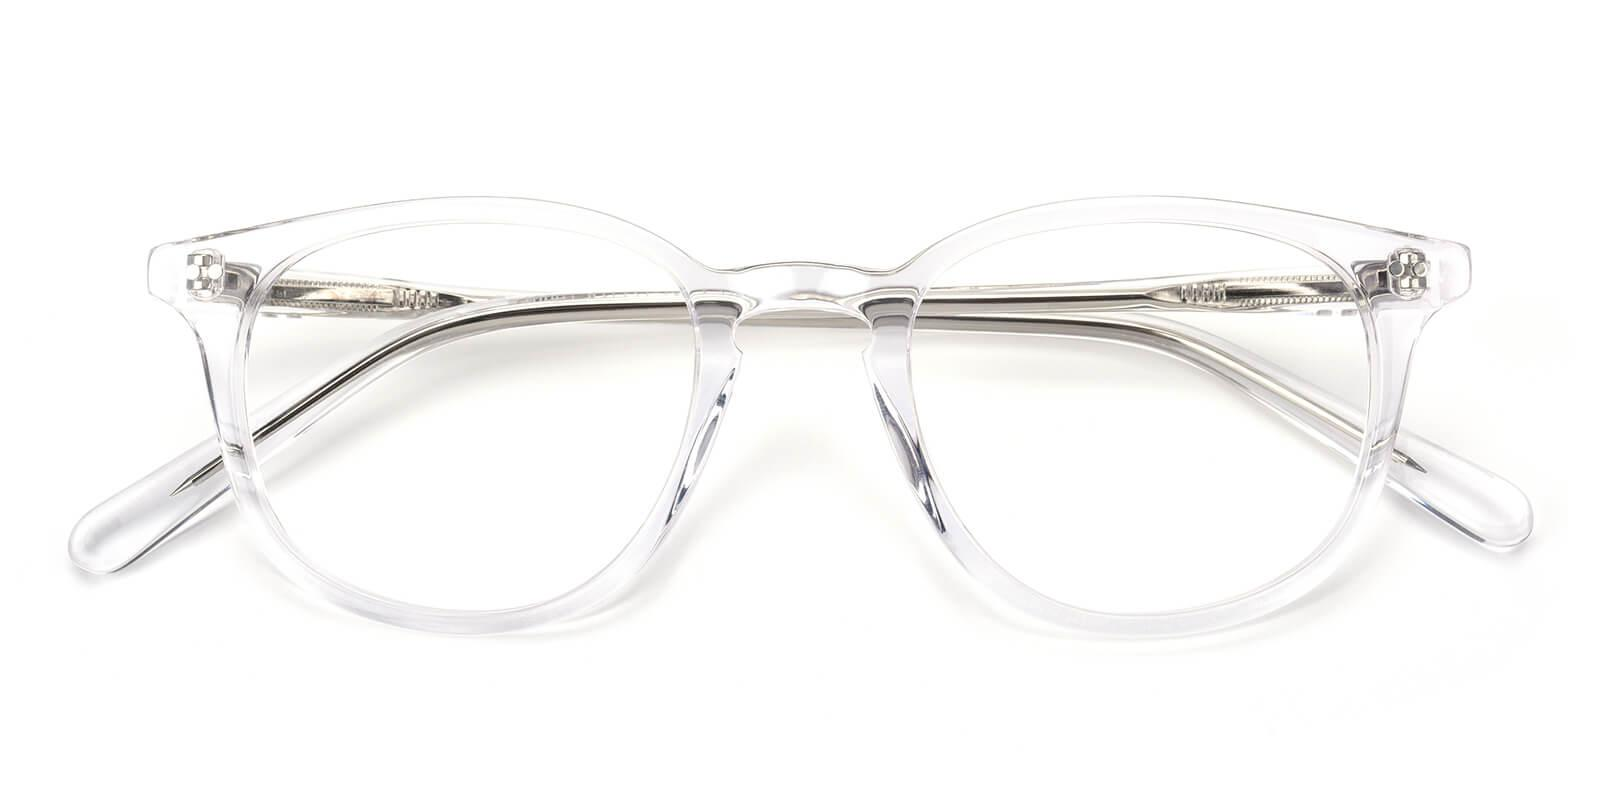 Trendiary-Translucent-Square-Acetate-Eyeglasses-detail